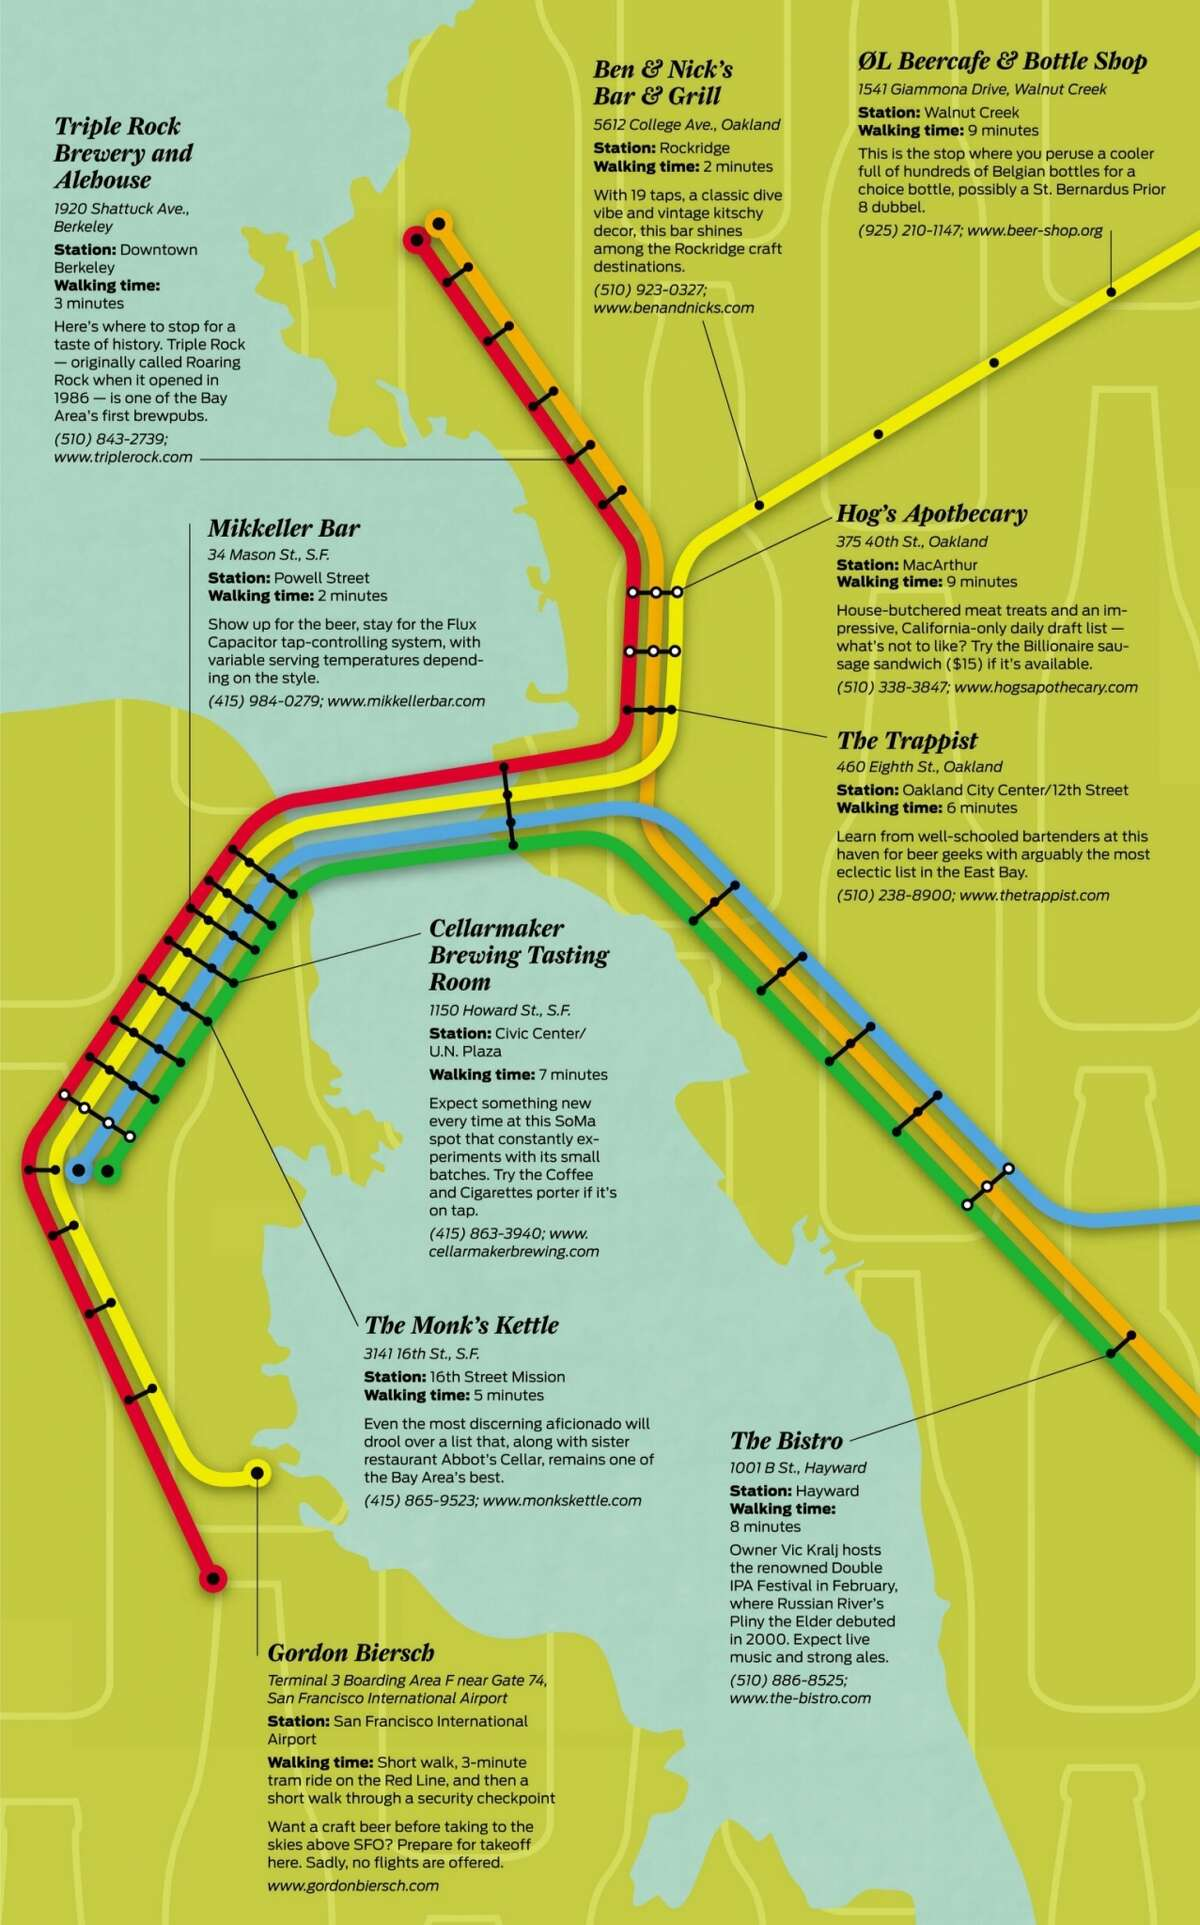 A Chronicle map by Erick Wong shows popular beer spots near BART stations.